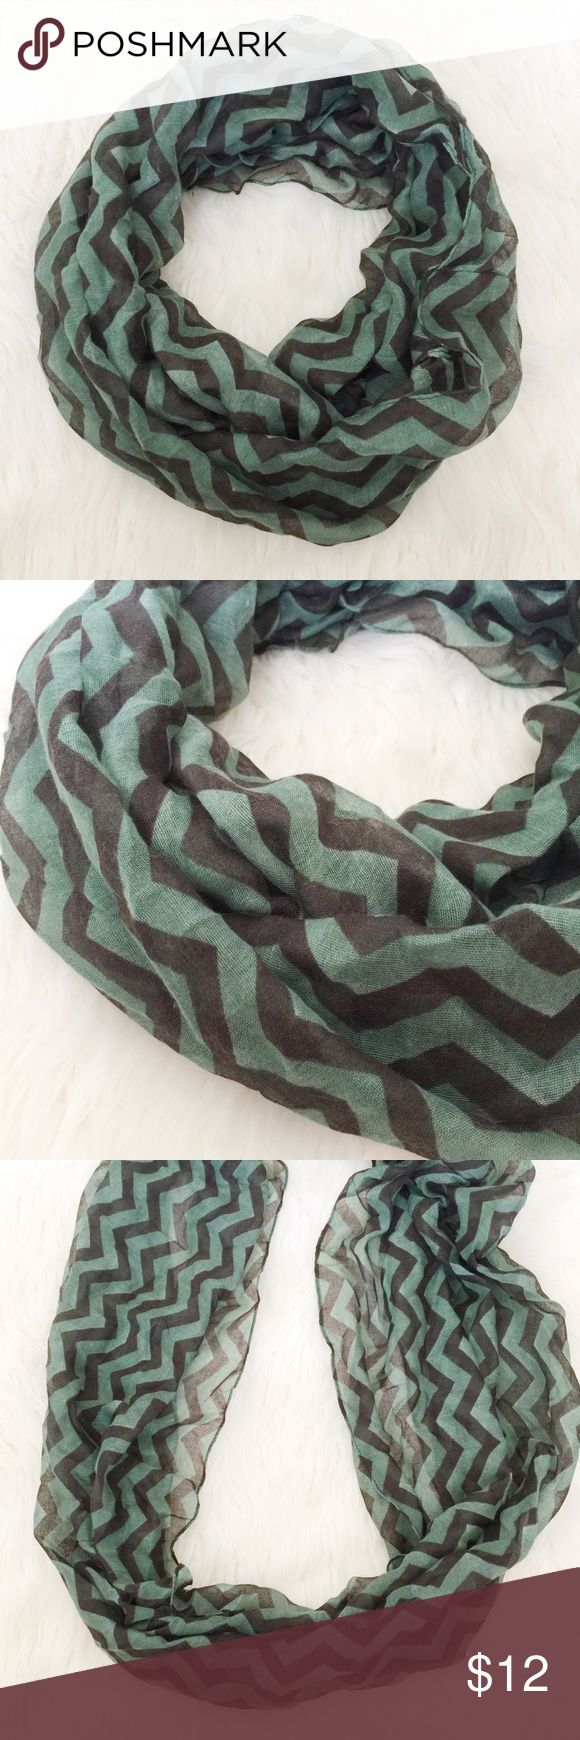 Best 25+ Chevron infinity scarves ideas only on Pinterest | Scarfs ...